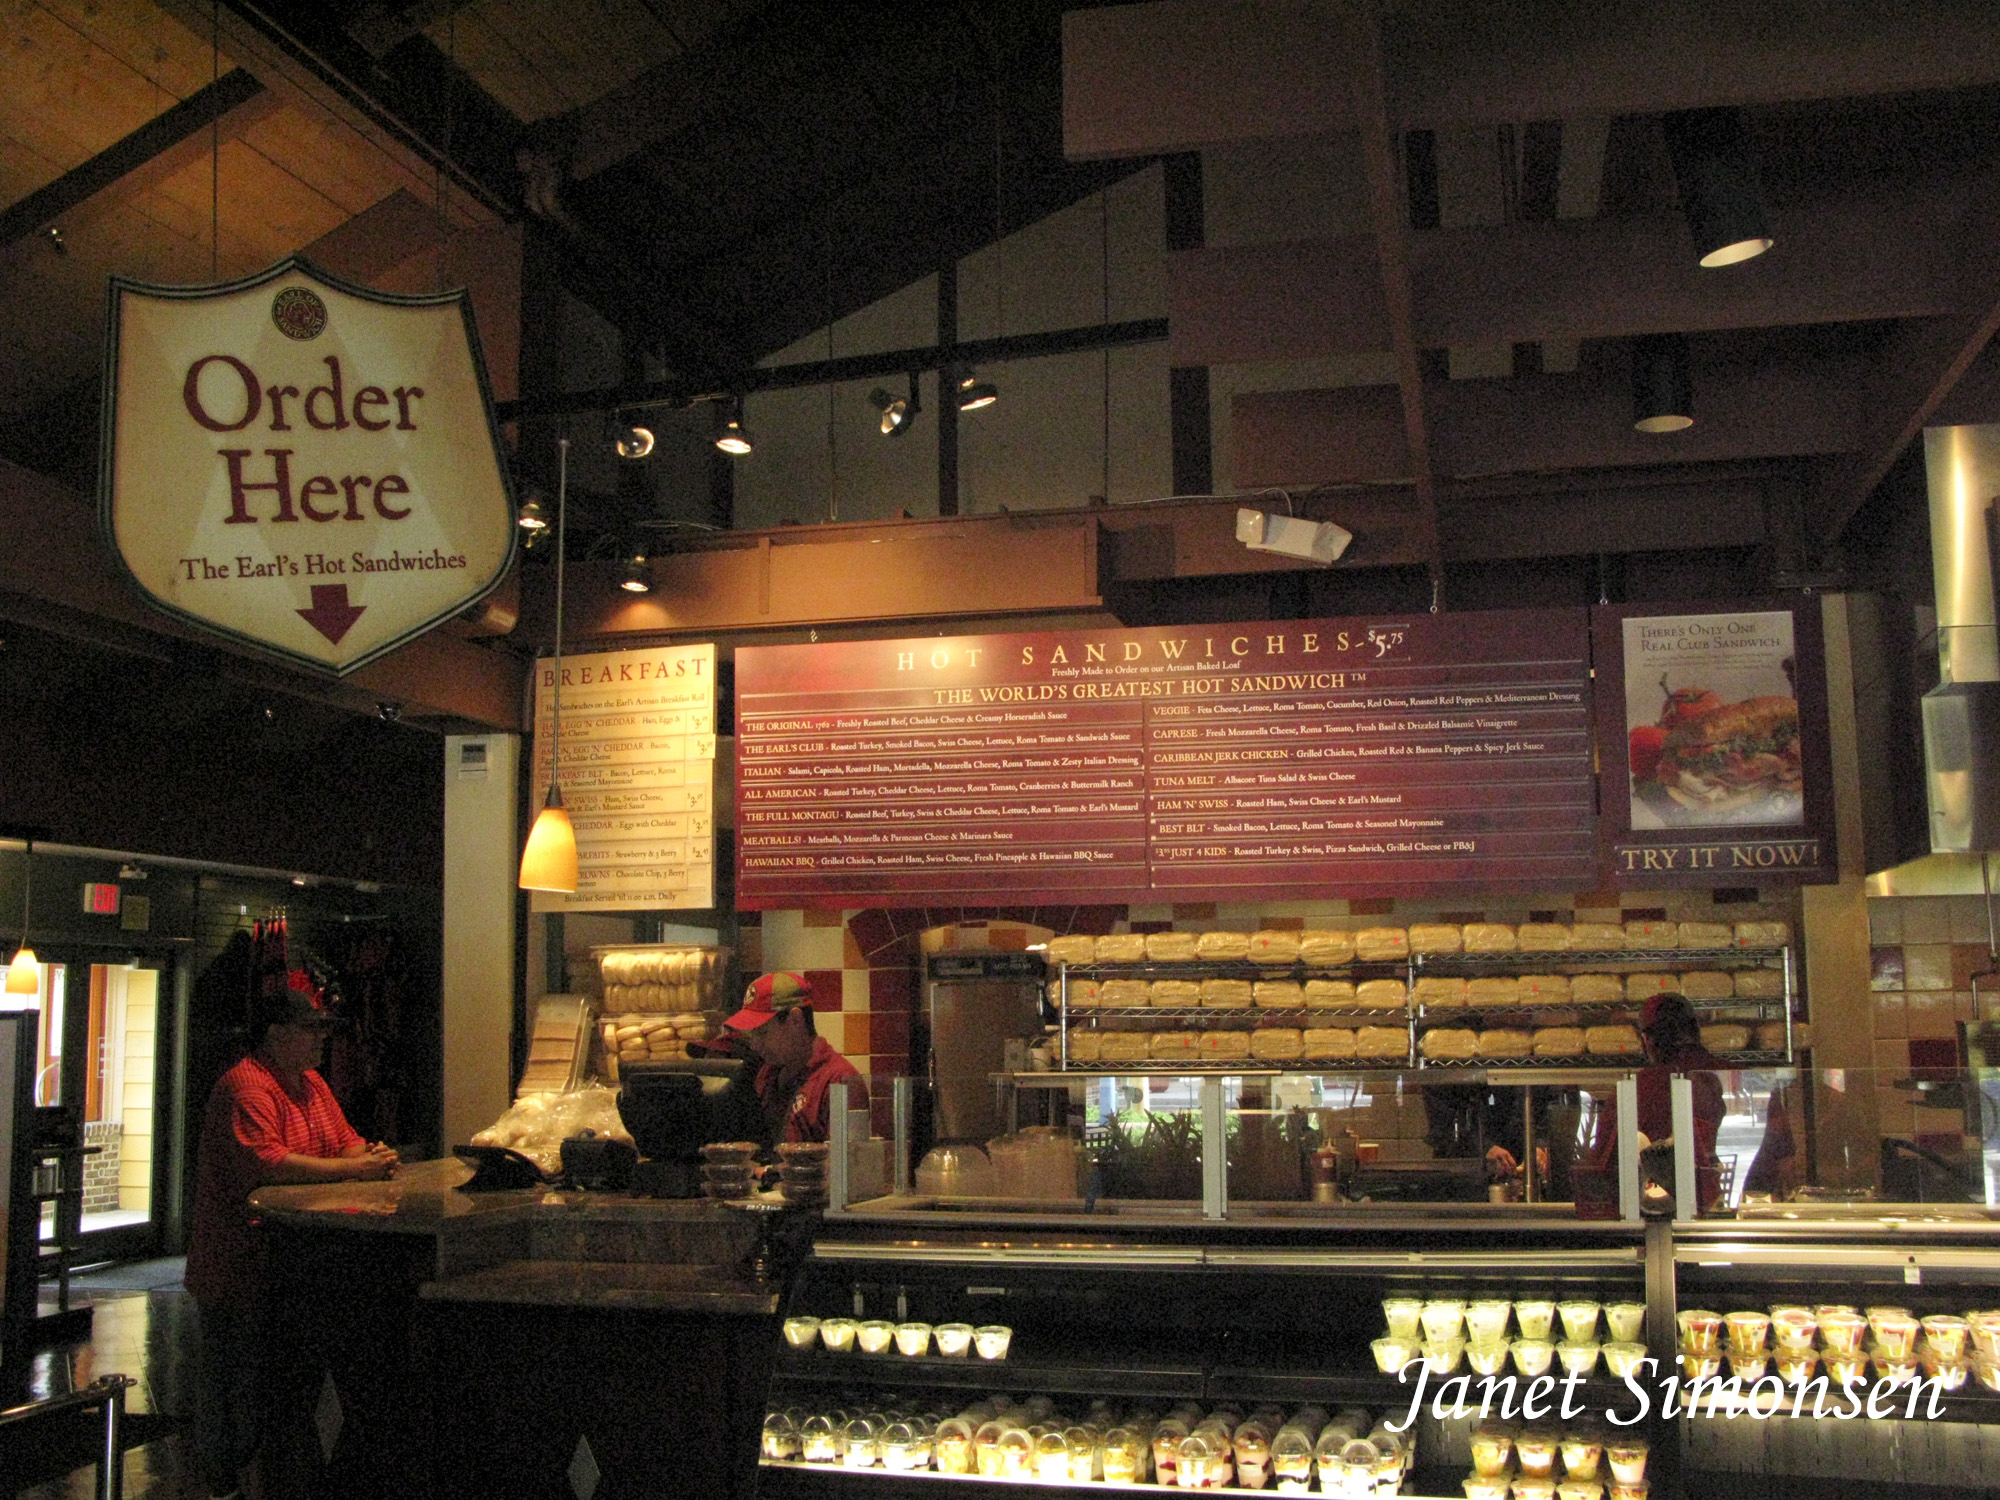 downtown Disney - Marketplace